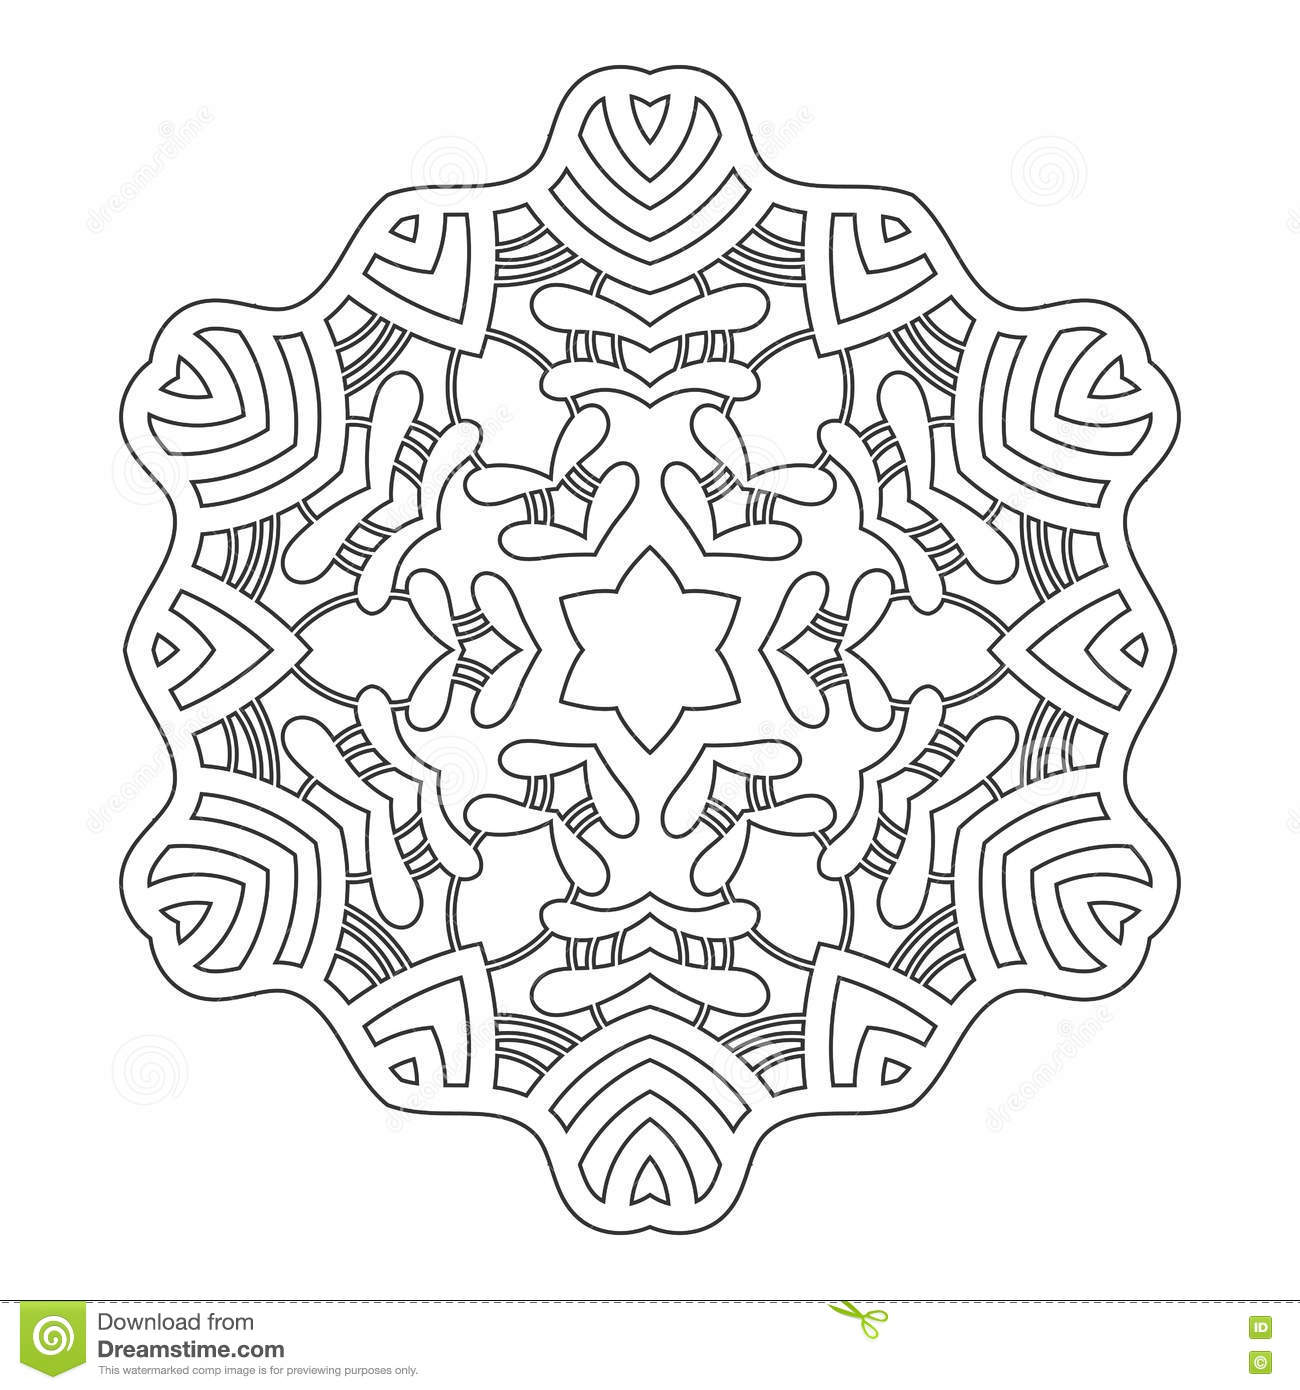 Coloring book snowflake - Round Ornament For Coloring Books Black White Pattern Lace Snowflake